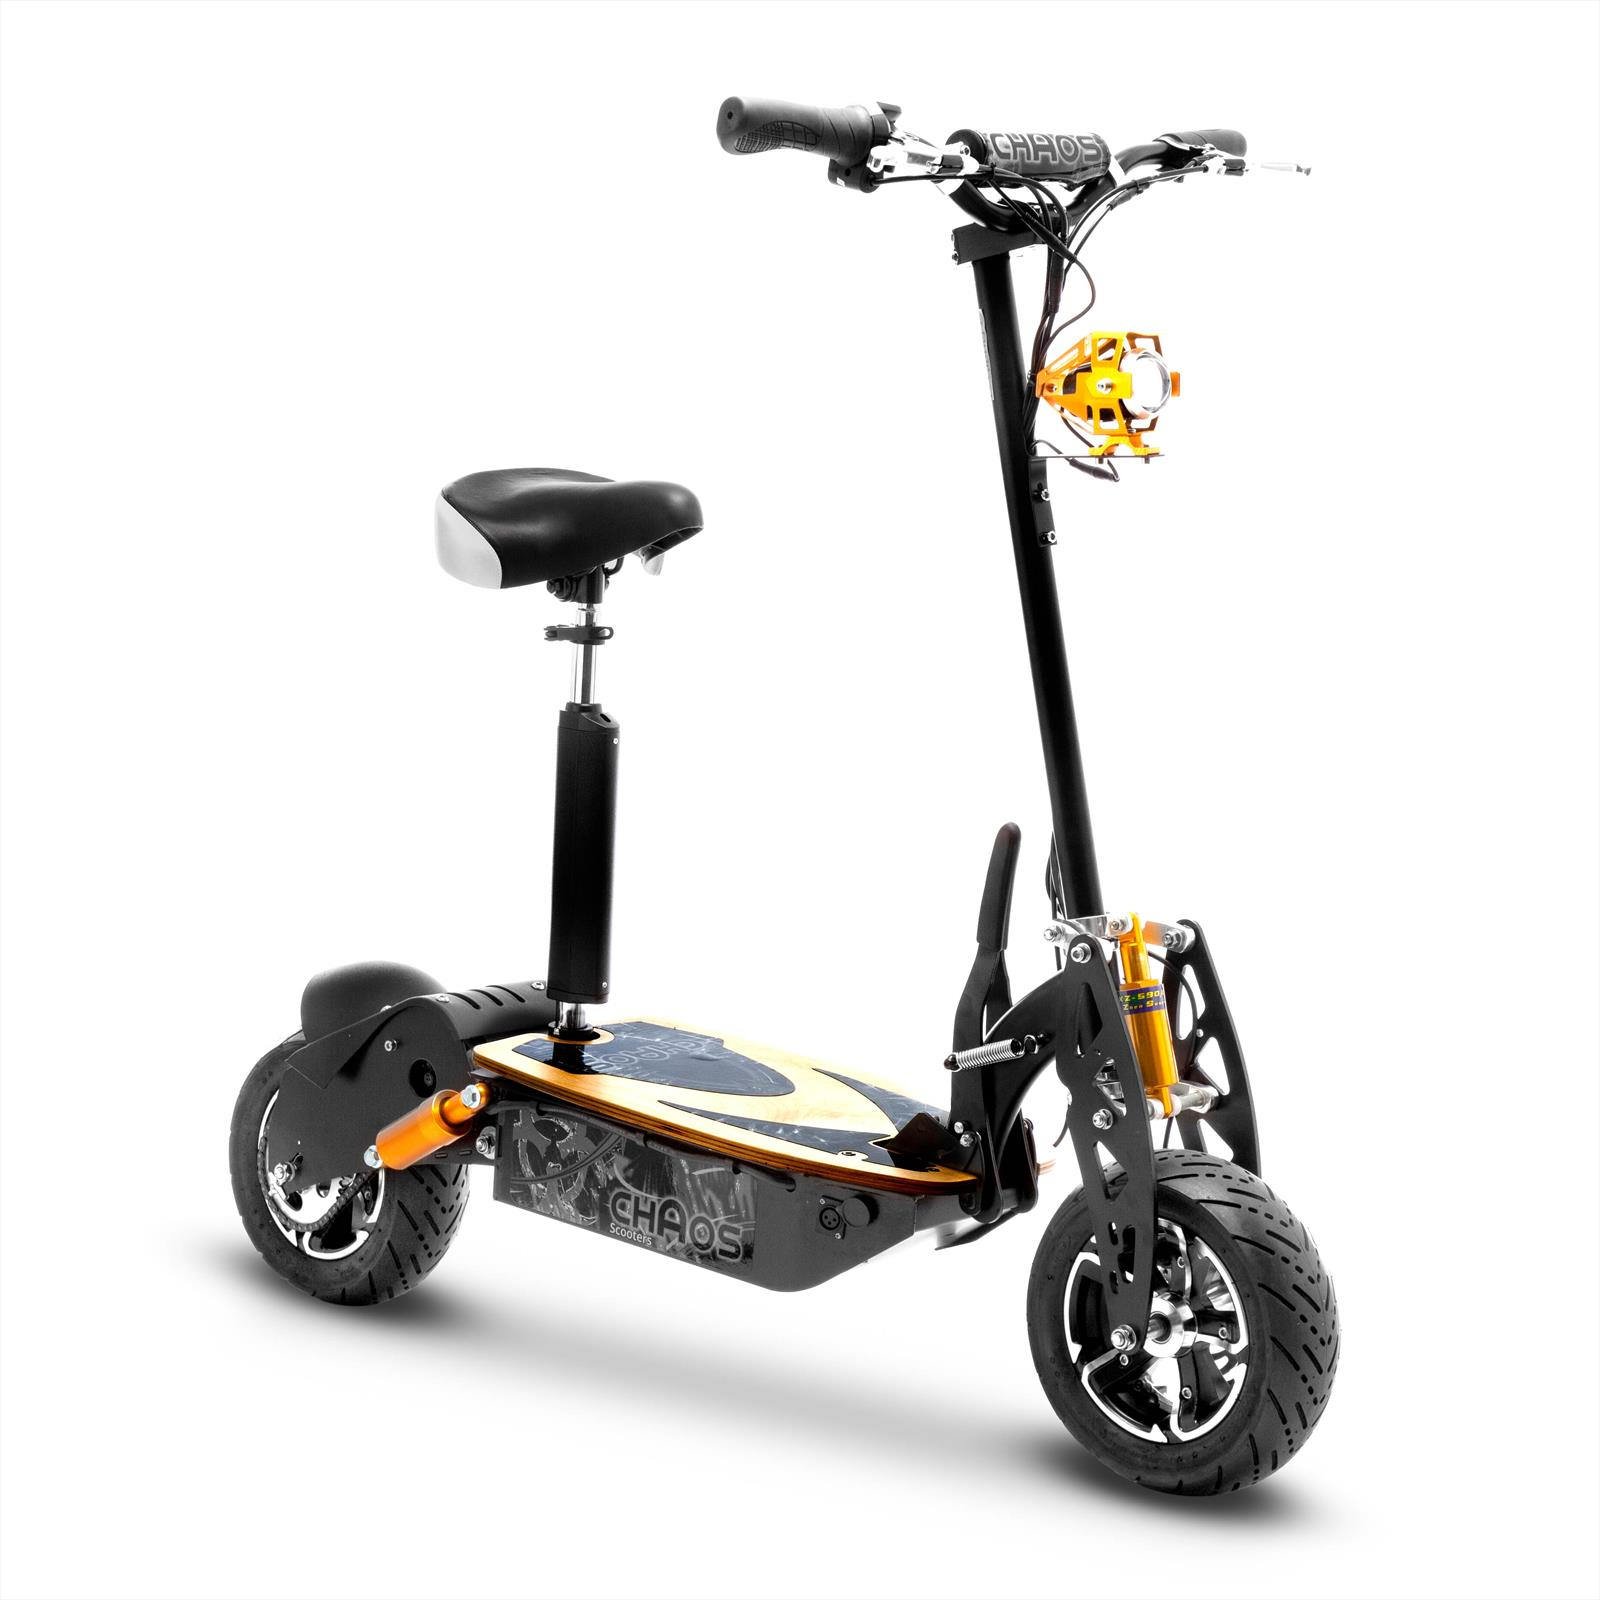 Chaos Sport 48 Volt 1600w Electric Scooter Big Wheel Powerboard 49cc Wiring Diagram Scooters For Sale